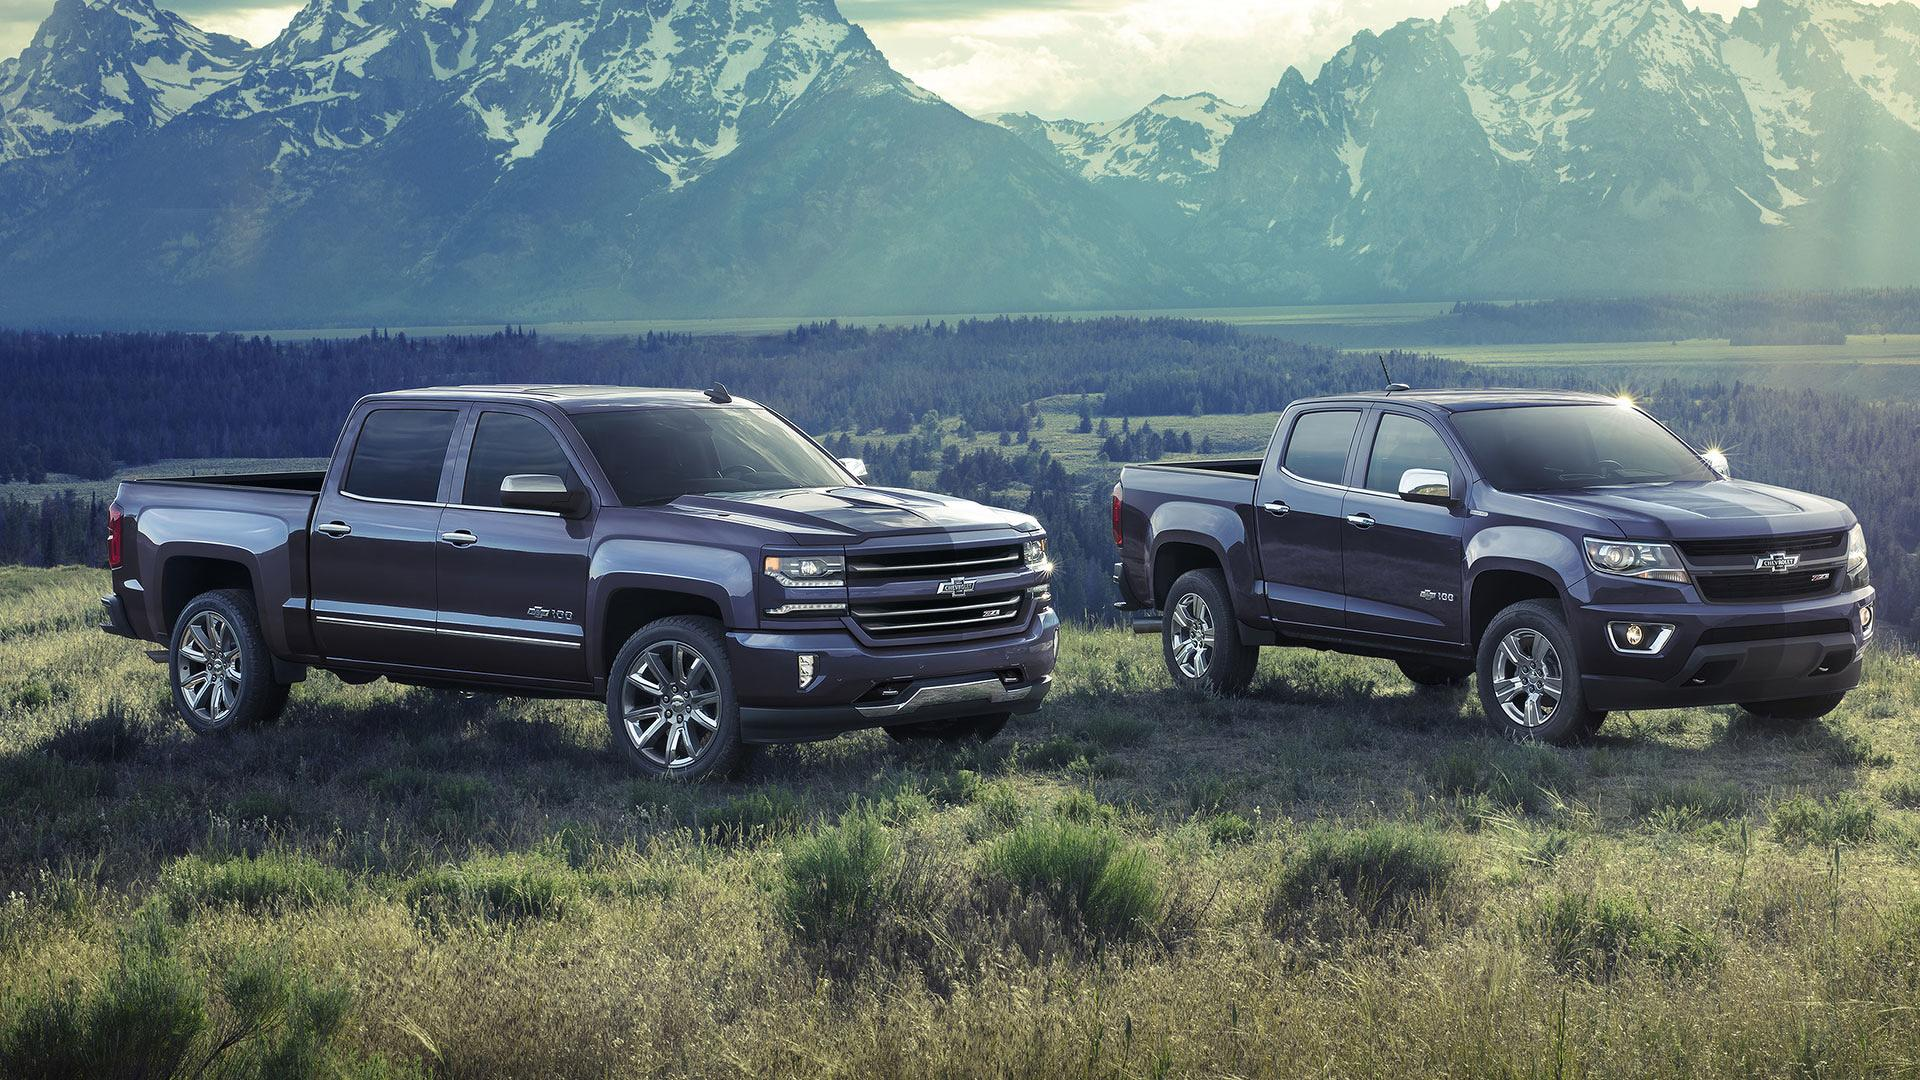 2018 chevy colorado silverado centennial editions revealed. Black Bedroom Furniture Sets. Home Design Ideas